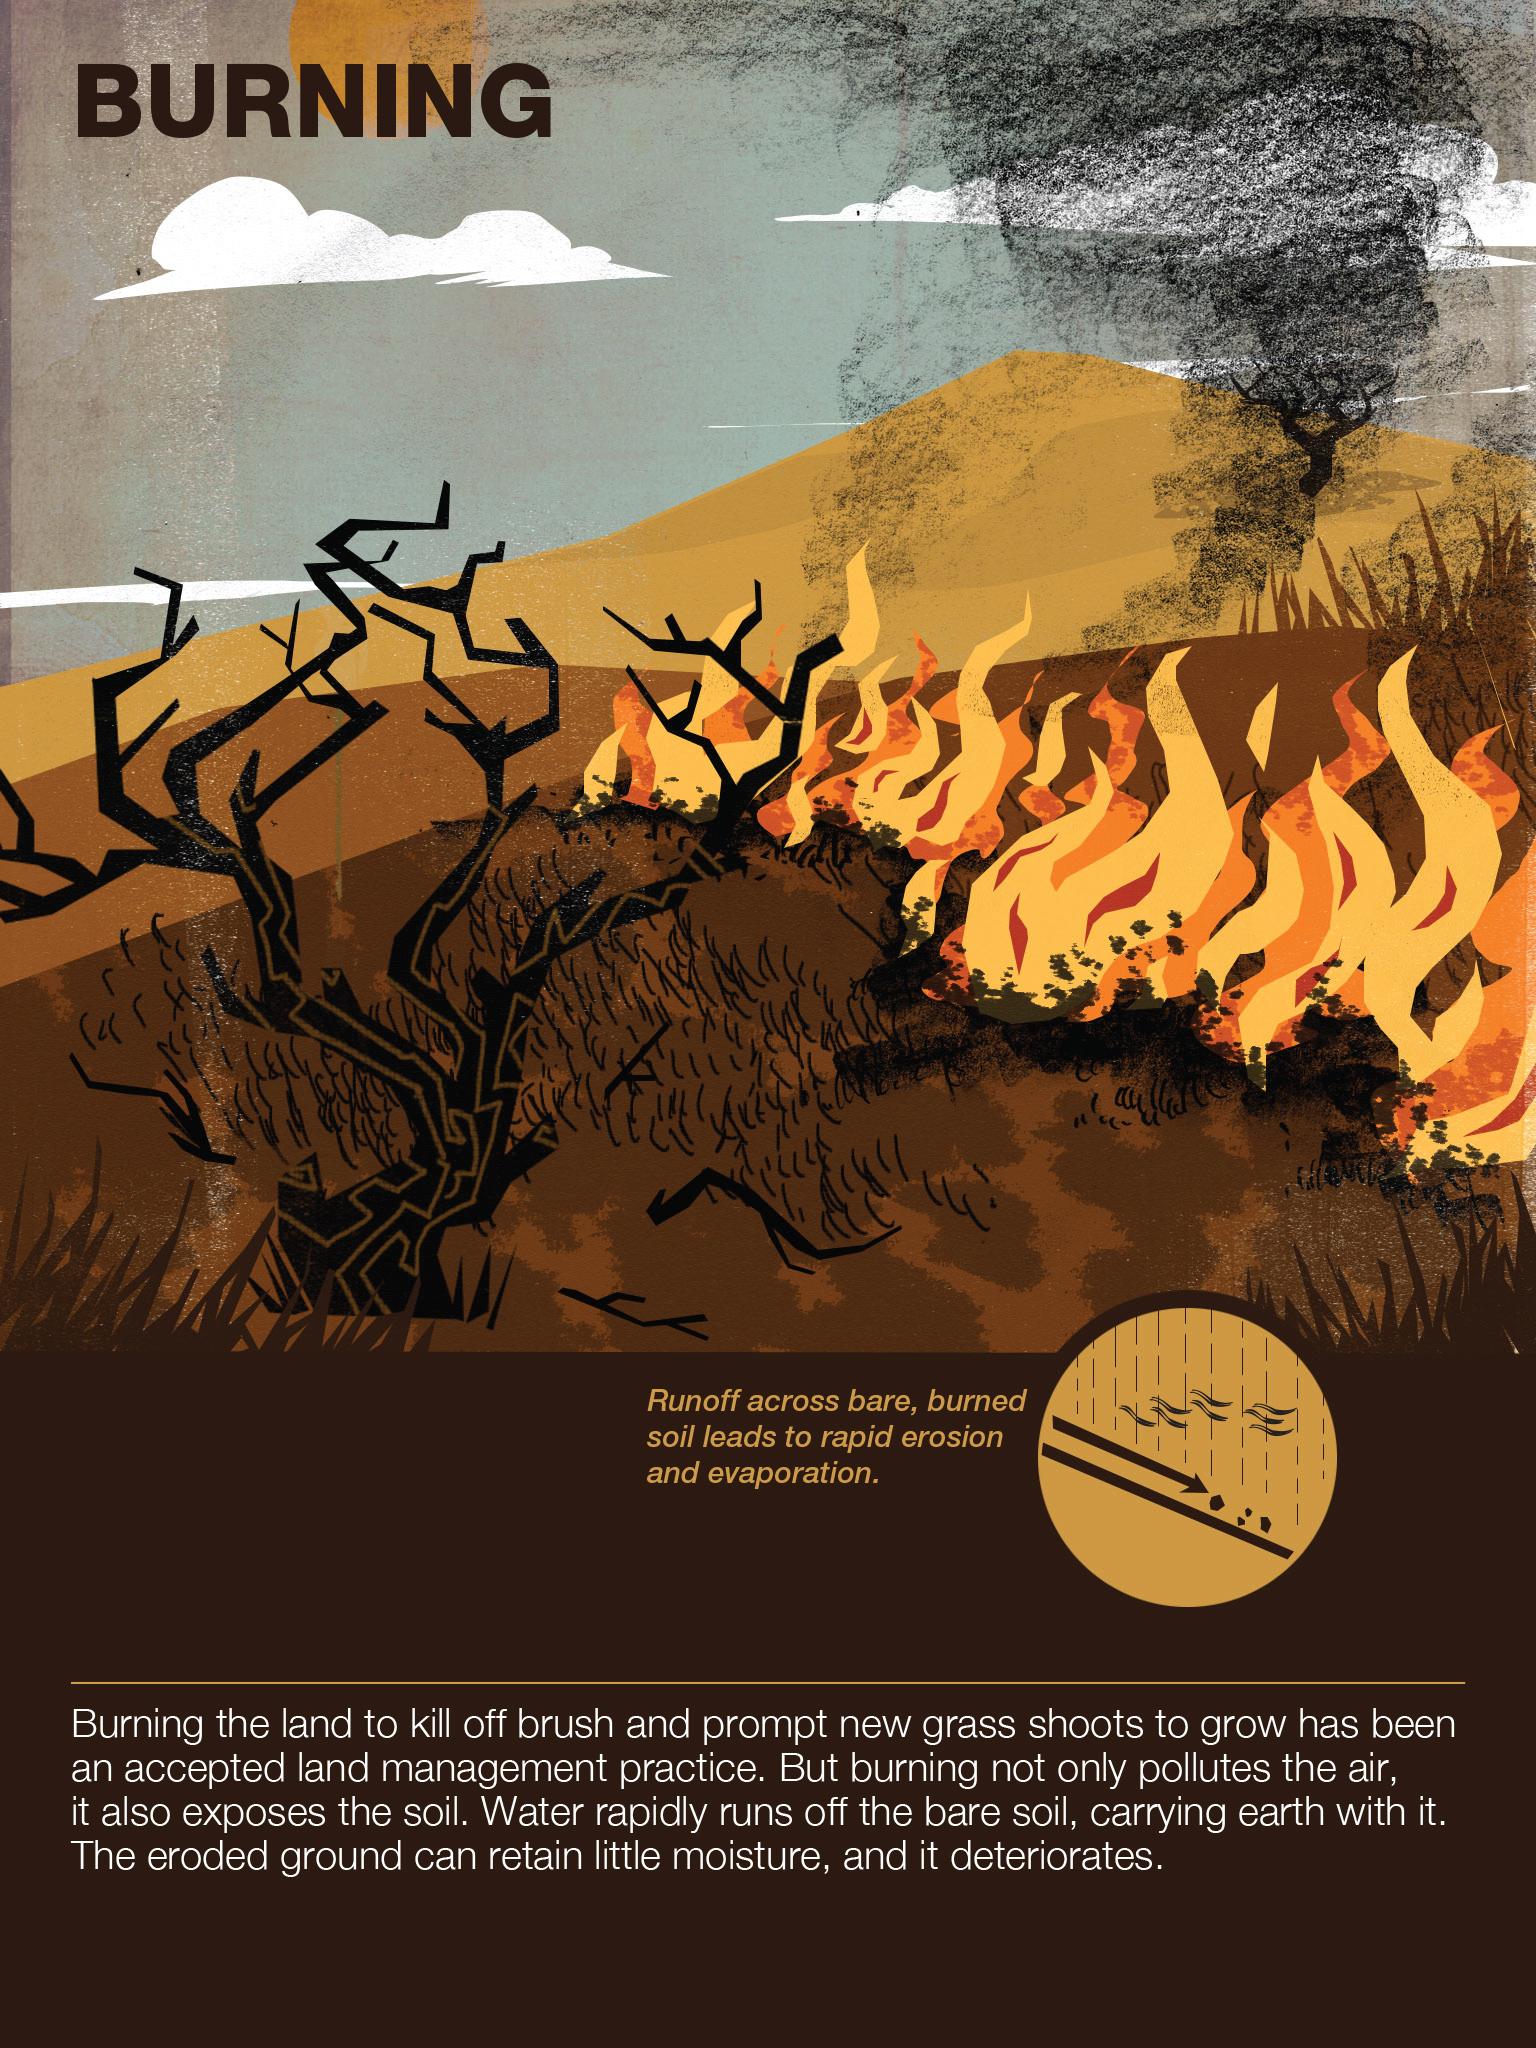 Burning. A widely-accepted land management strategy, this graphic hints why it may not be so good after all.